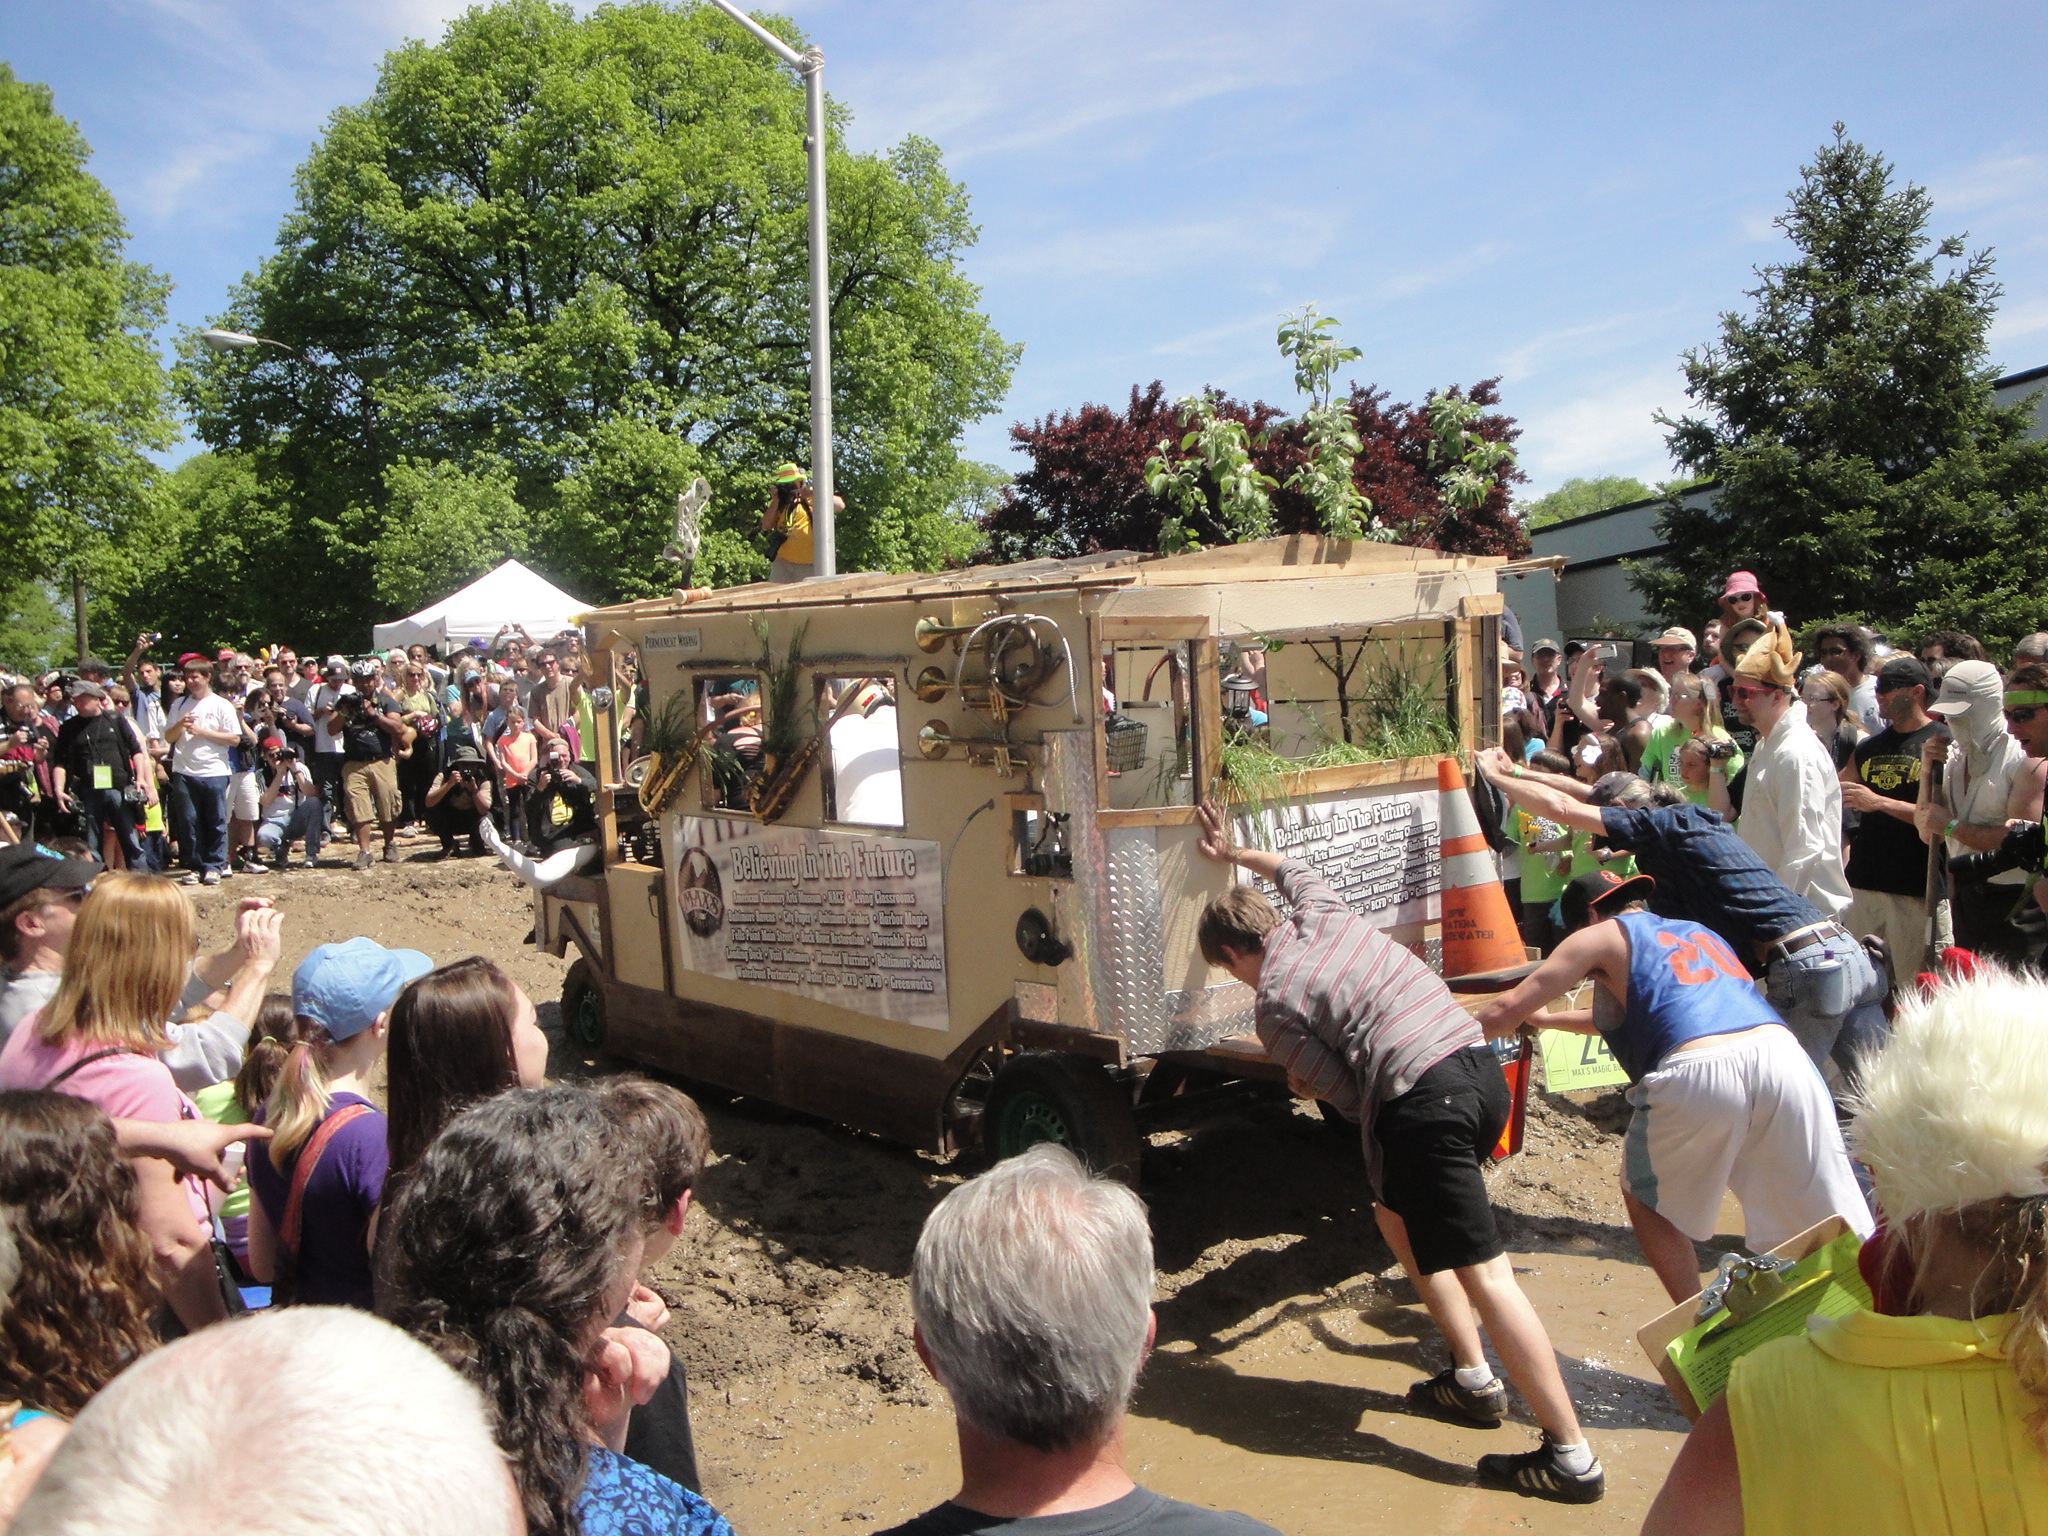 Vehicle in the mud at the Kinetic Sculpture Race 2013